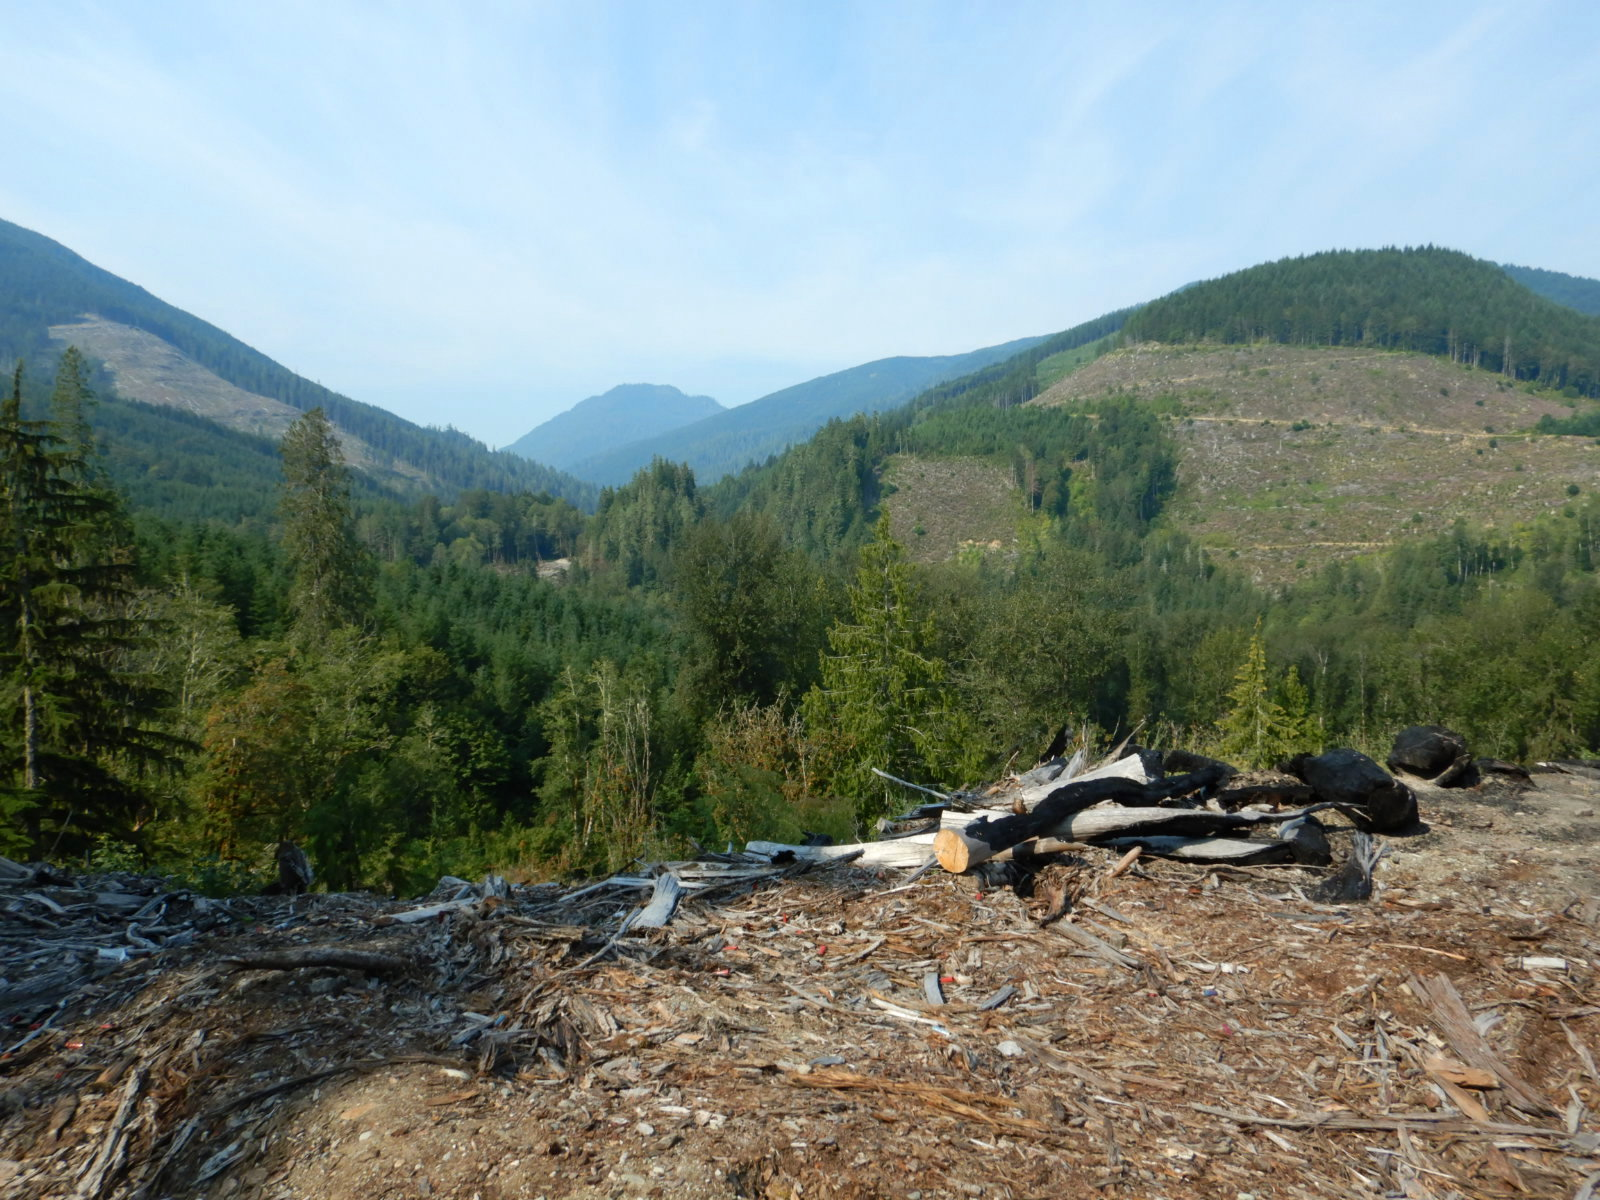 view of forest area with maturing trees and recently clear cut areas